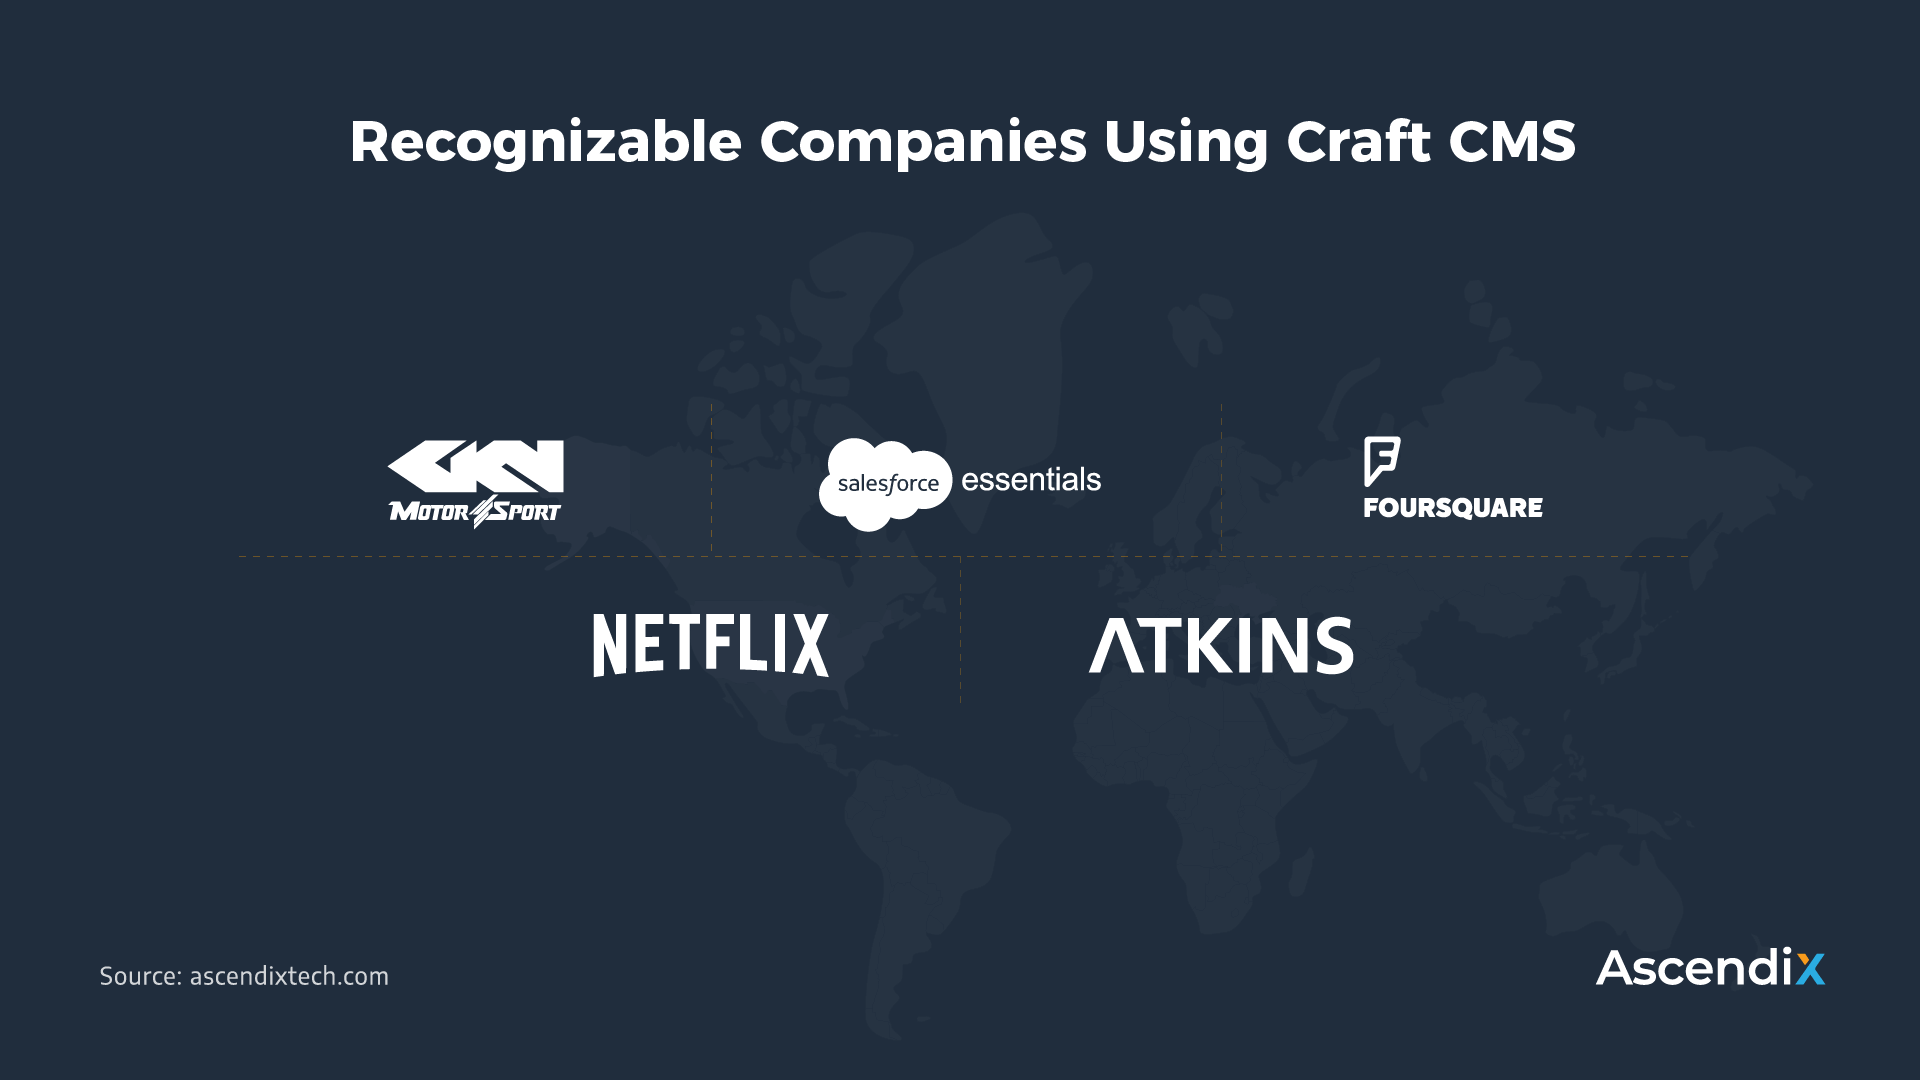 Recognizable Companies Using Craft CMS